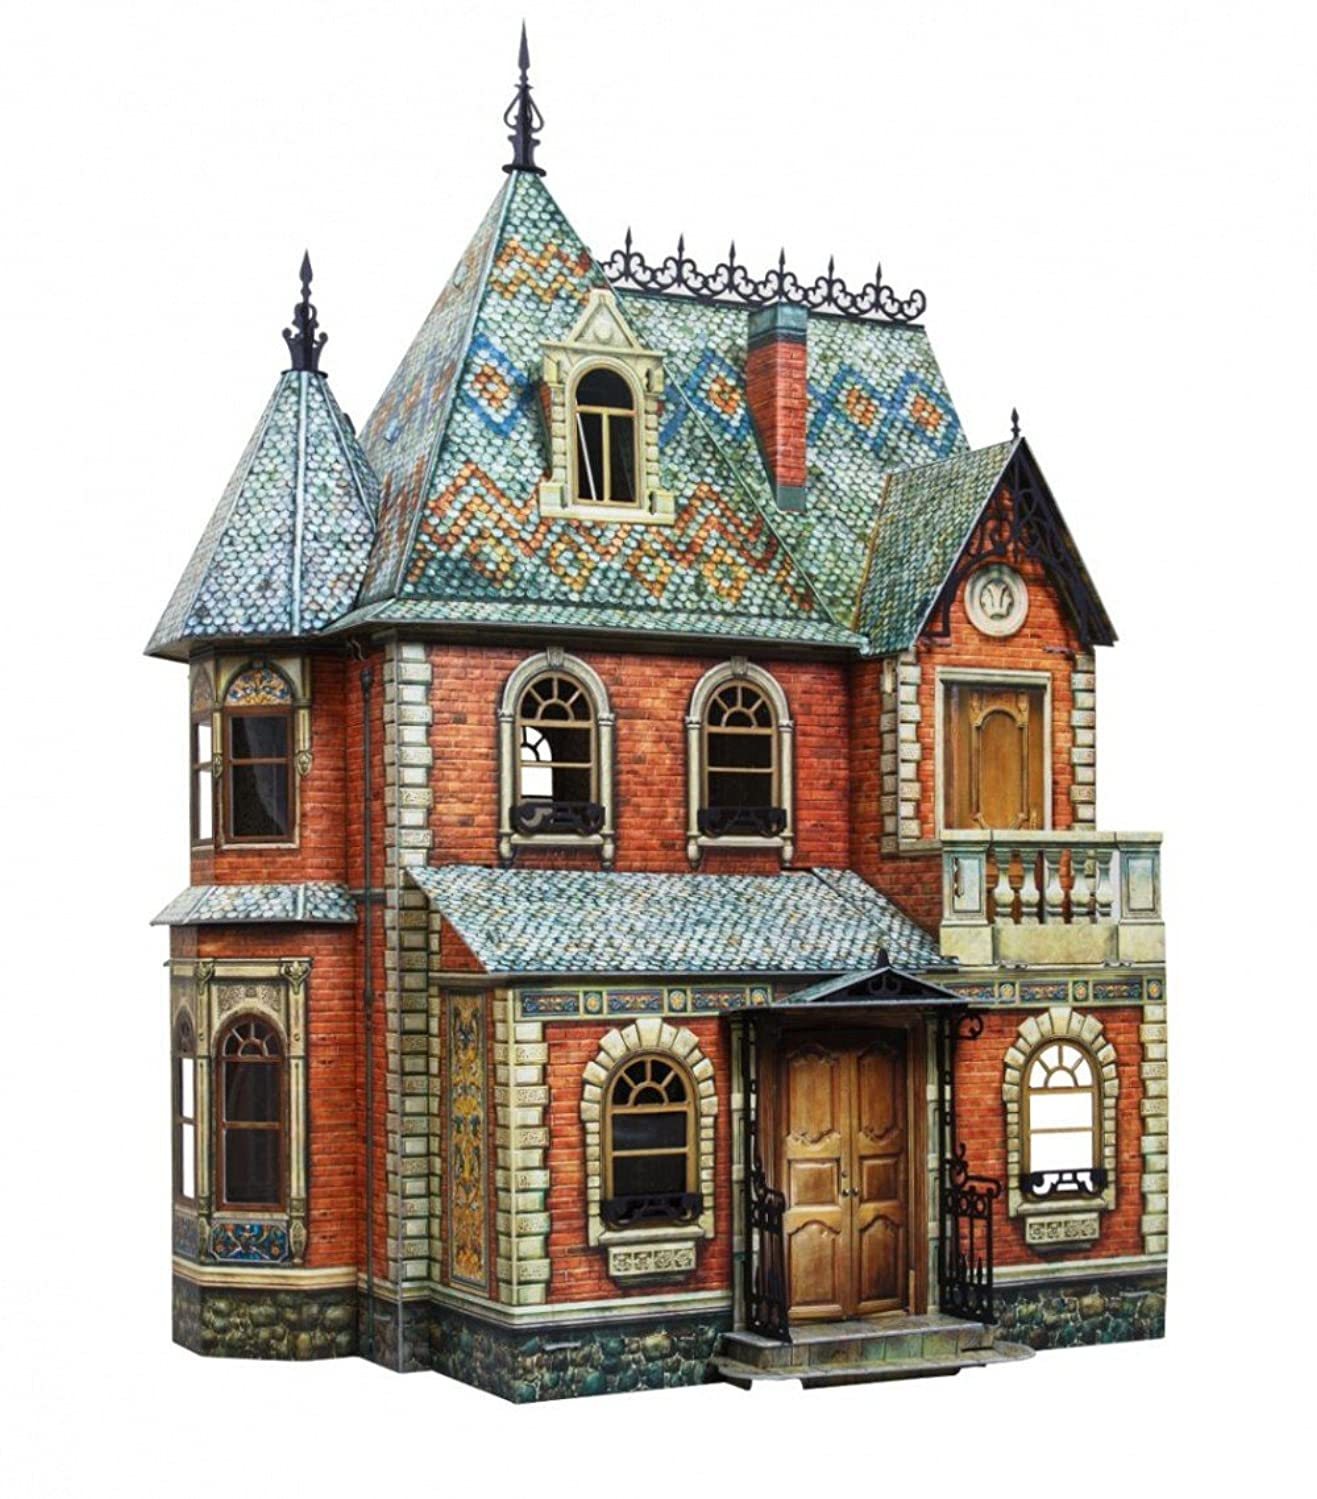 UMBUM 283 - Architectural Playing Toys Doll House Cardboard 3D Puzzle - 17.25